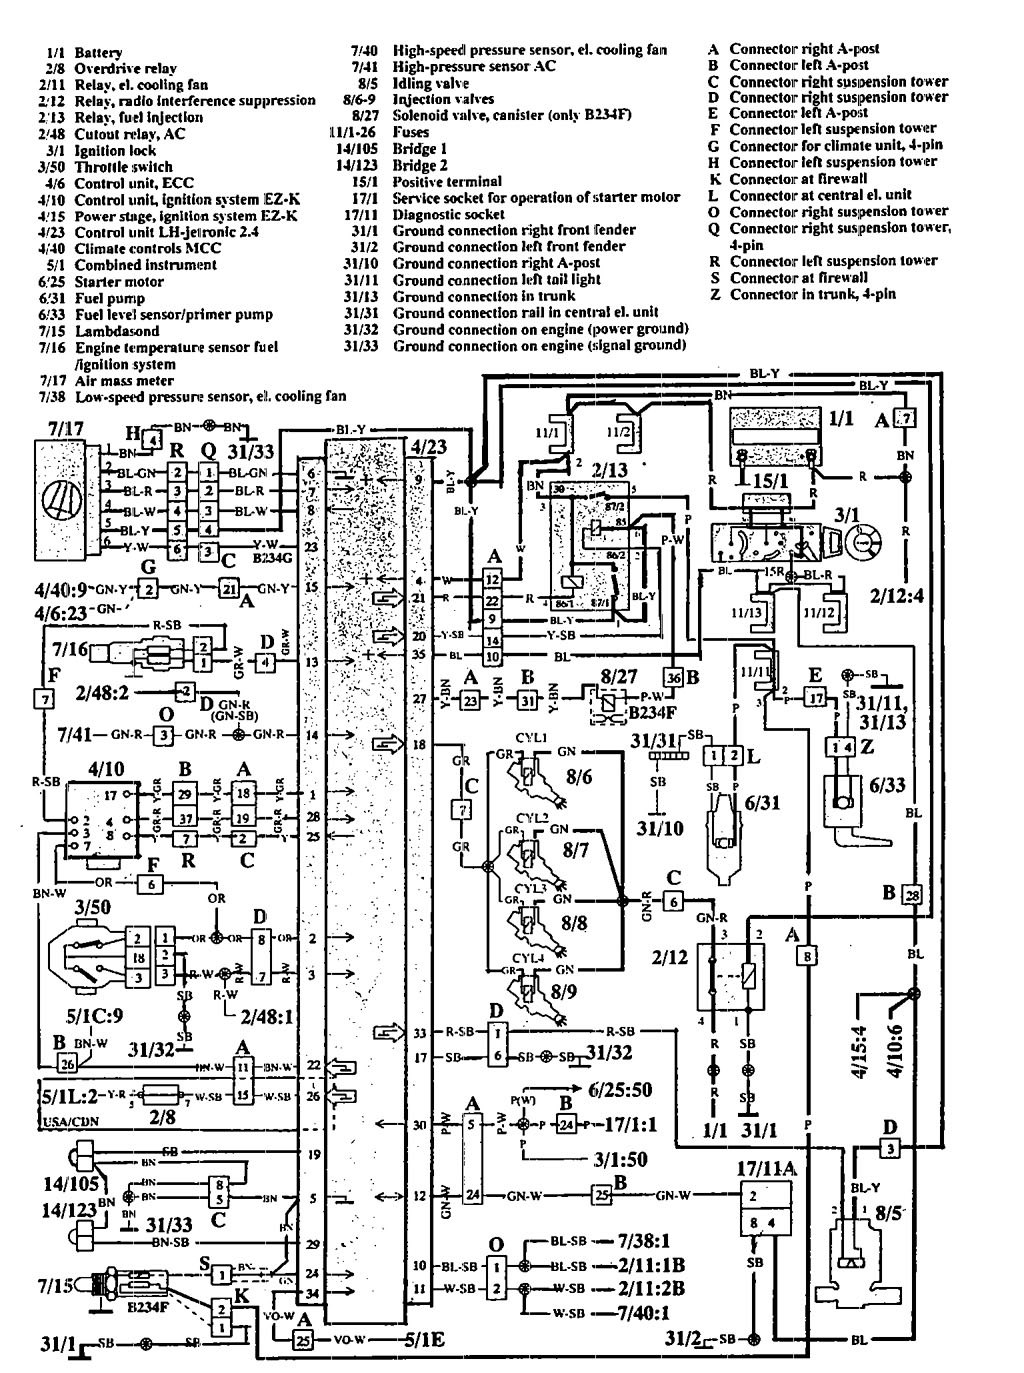 modern volvo 850 radio wiring diagram composition best images for rh  oursweetbakeshop info 1992 volvo 960